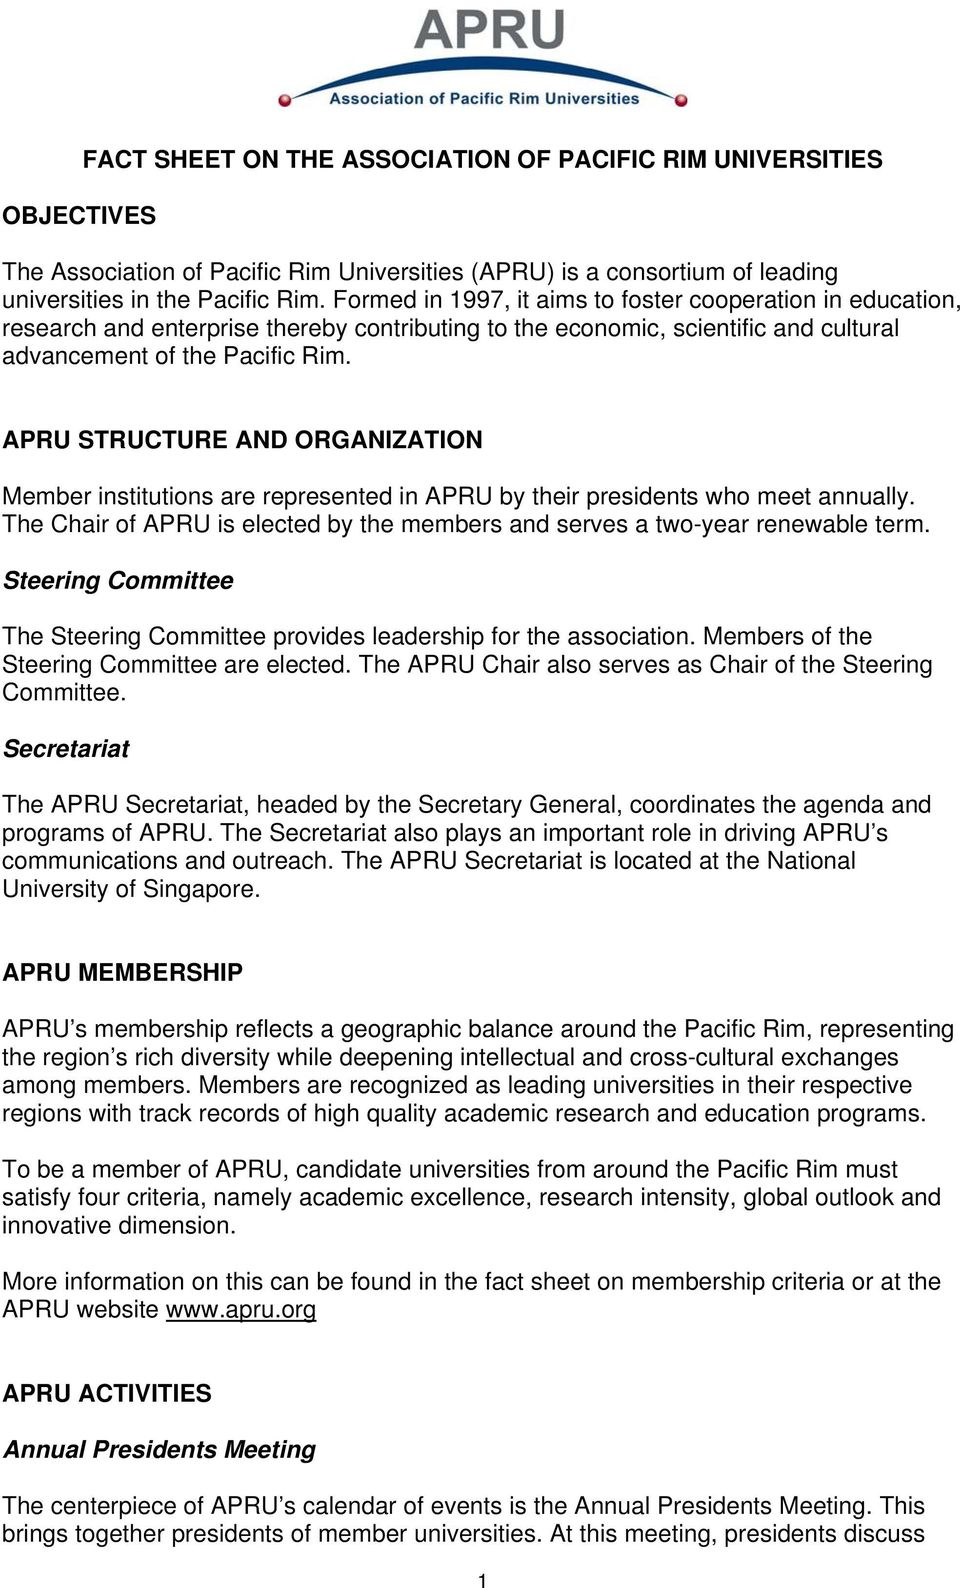 APRU STRUCTURE AND ORGANIZATION Member institutions are represented in APRU by their presidents who meet annually. The Chair of APRU is elected by the members and serves a two-year renewable term.